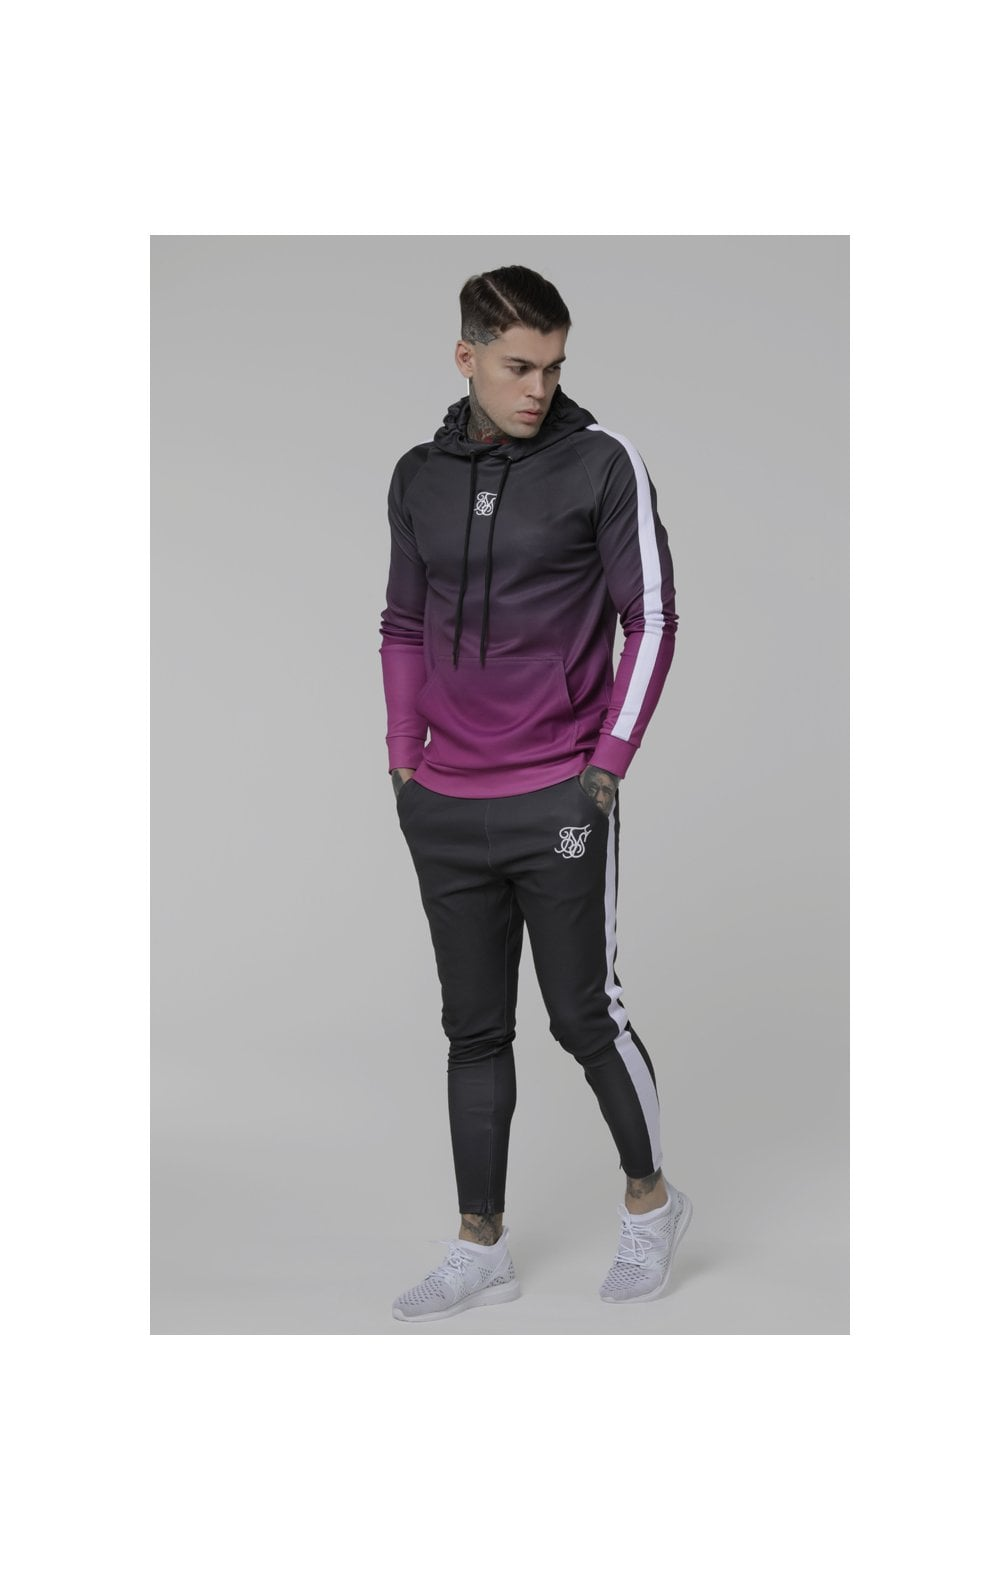 Load image into Gallery viewer, SikSilk Vapour Fade Overhead Hoodie - Grey & Pink (4)